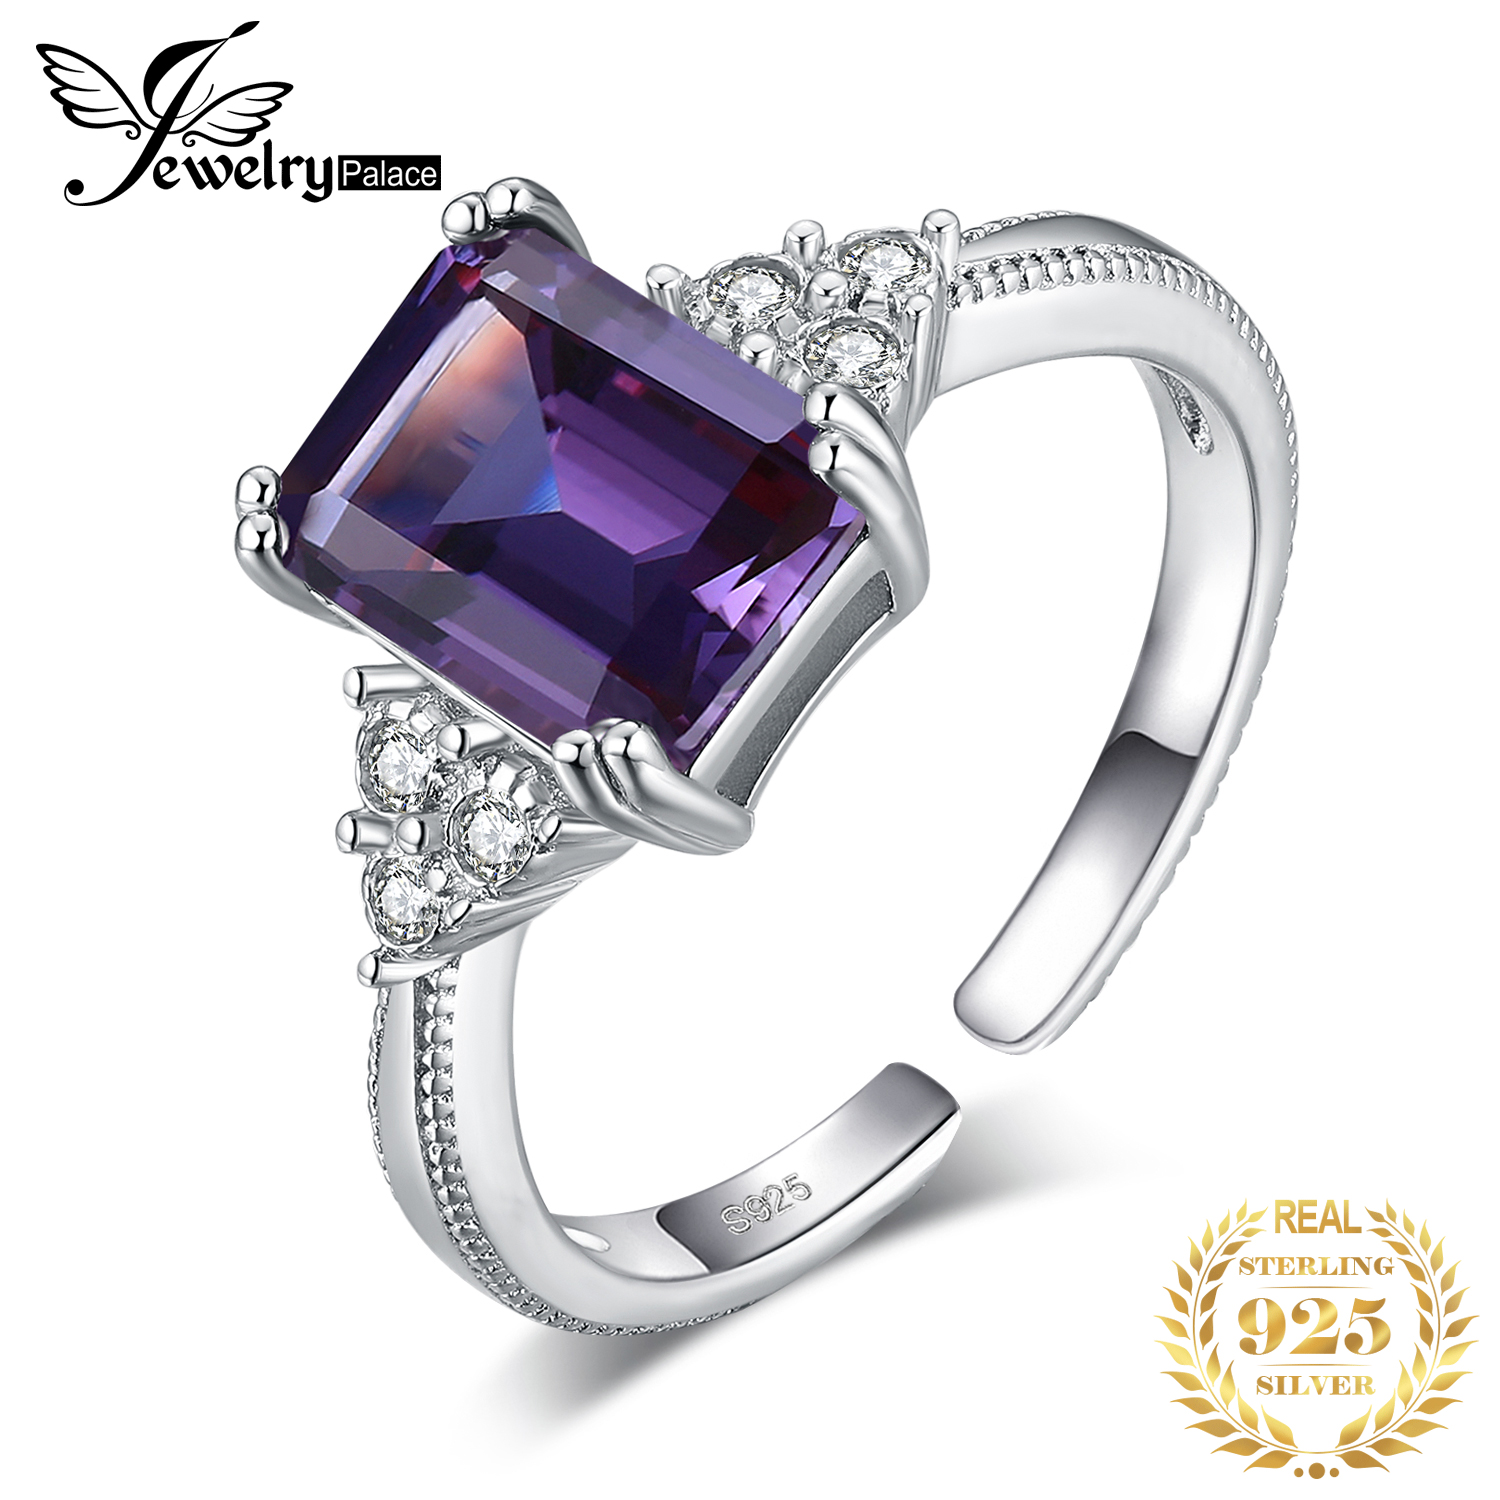 JewelryPalace Created Alexandrite Sapphire Ring 925 Sterling Silver Rings For Women Engagement Ring Silver 925 Gemstones Jewelry